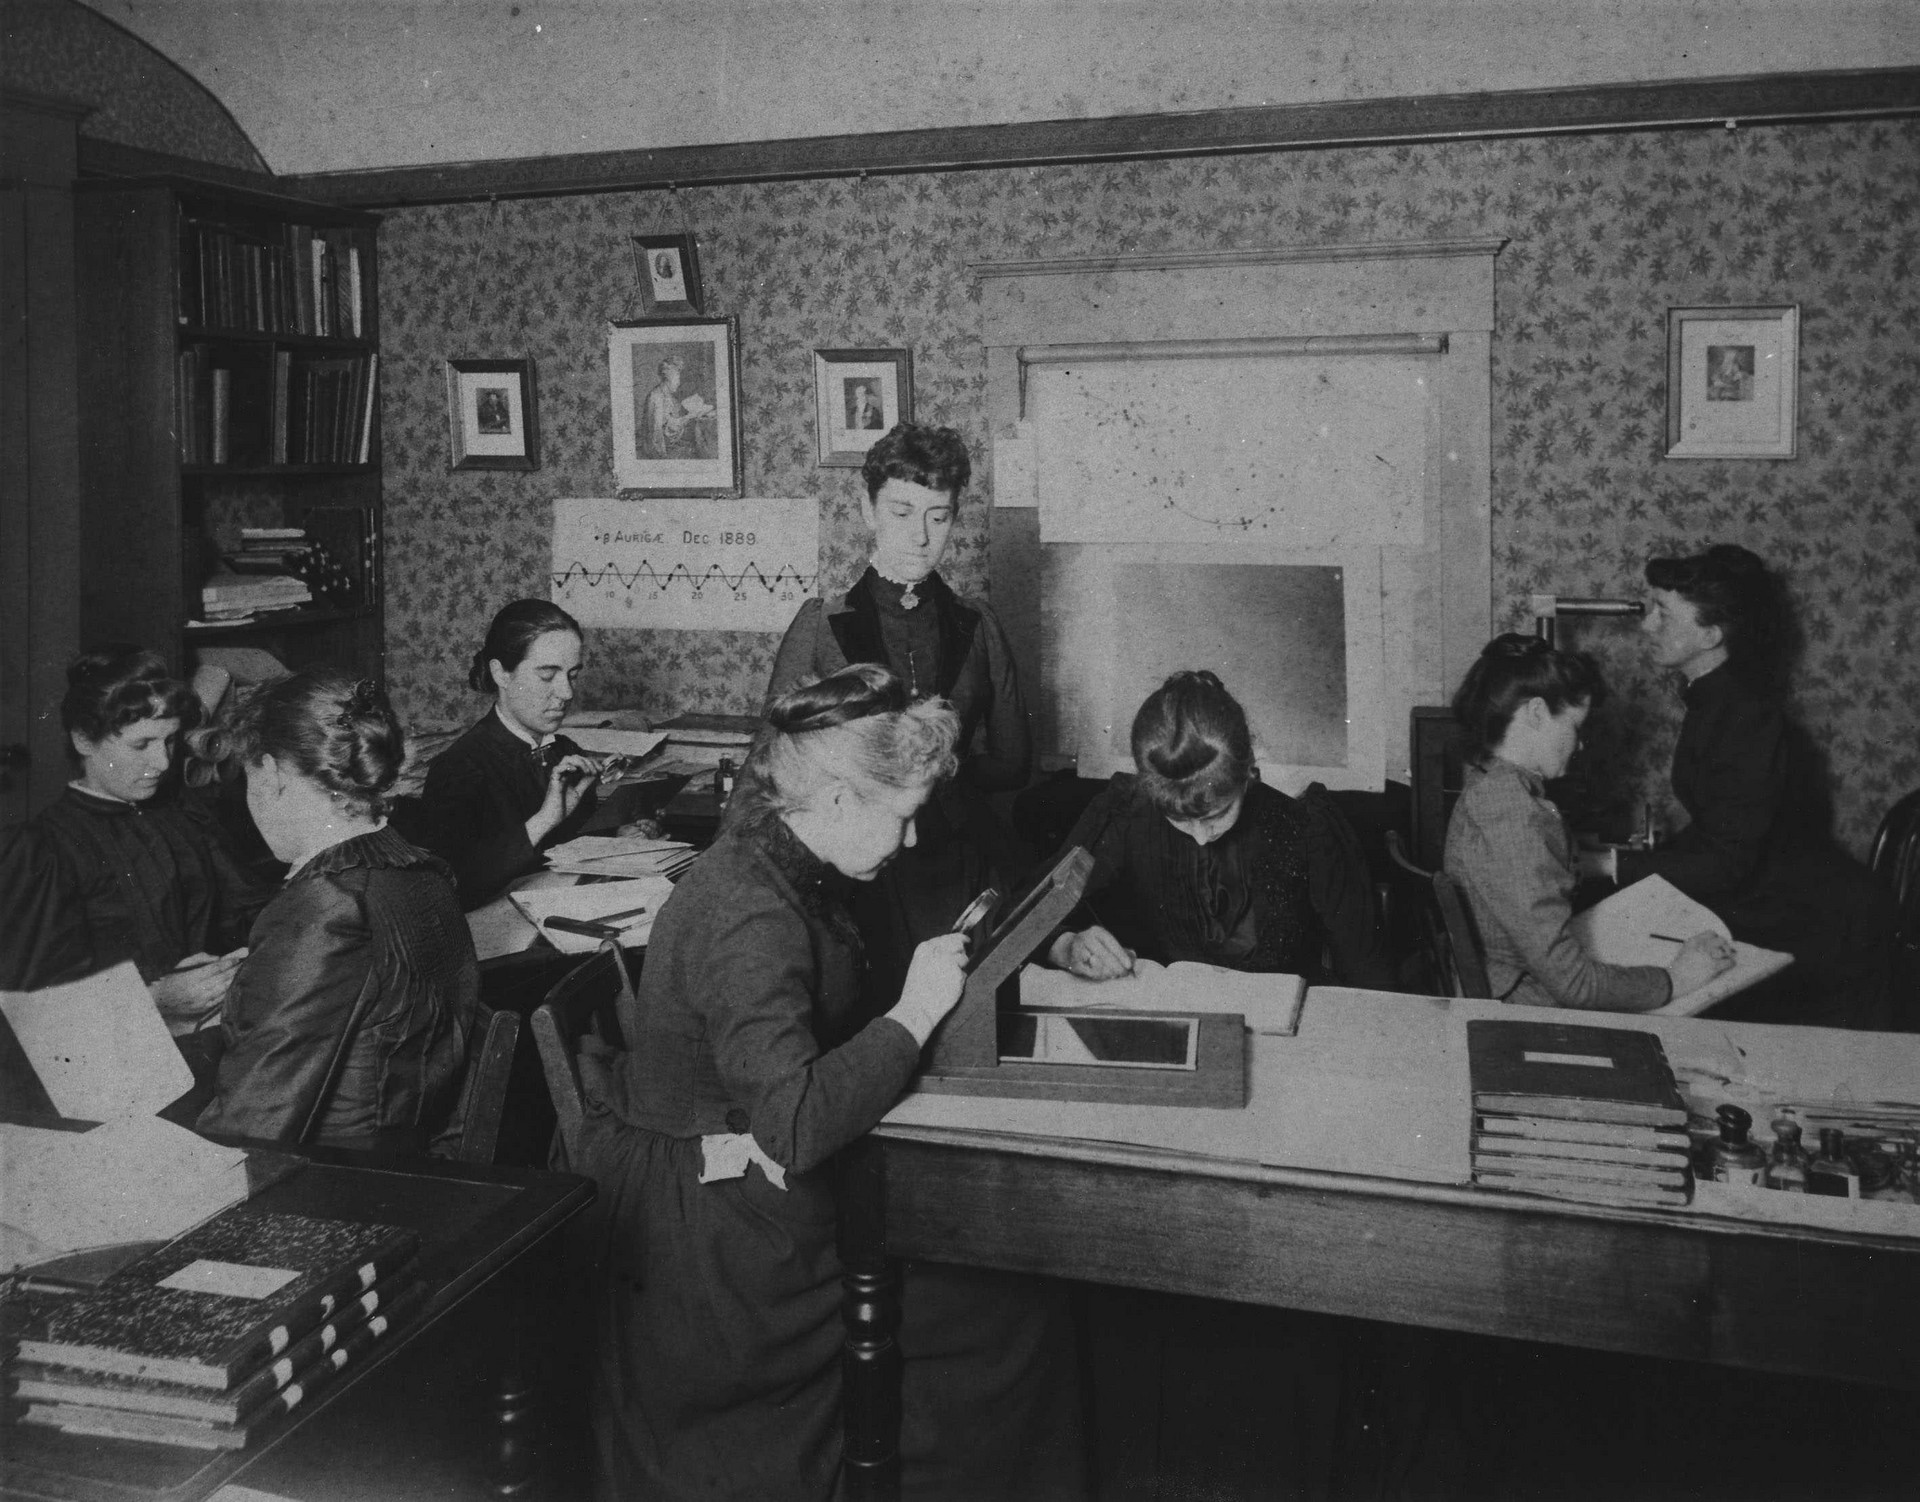 Women 'computers' at the Harvard College Observatory, circa 1890. The group included Harvard computer and astronomer Henrietta Swan Leavitt (1868–1921), Annie Jump Cannon (1863–1941), Williamina Fleming (1857– 1911), and Antonia Maury (1866–1952). Seated, third from left, with magnifying glass: Antonia Maury; standing, at center: Williamina Fleming. (Source: Harvard College Observatory. This work is in the public domain because its copyright has expired).